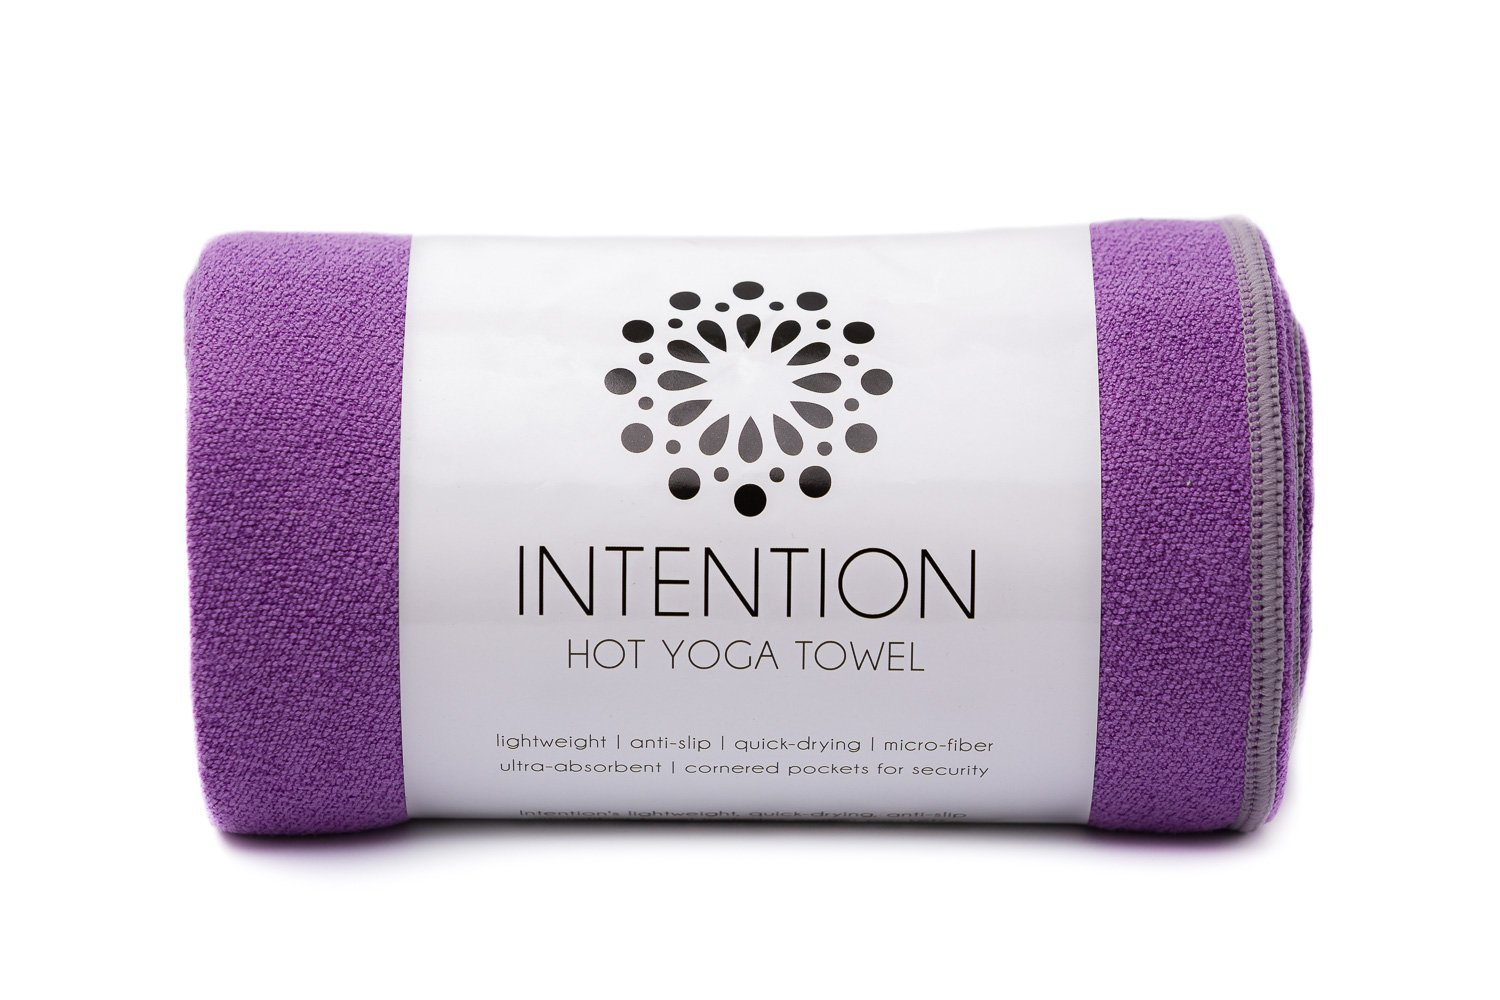 Intention Non-Slip Hot Yoga Towel